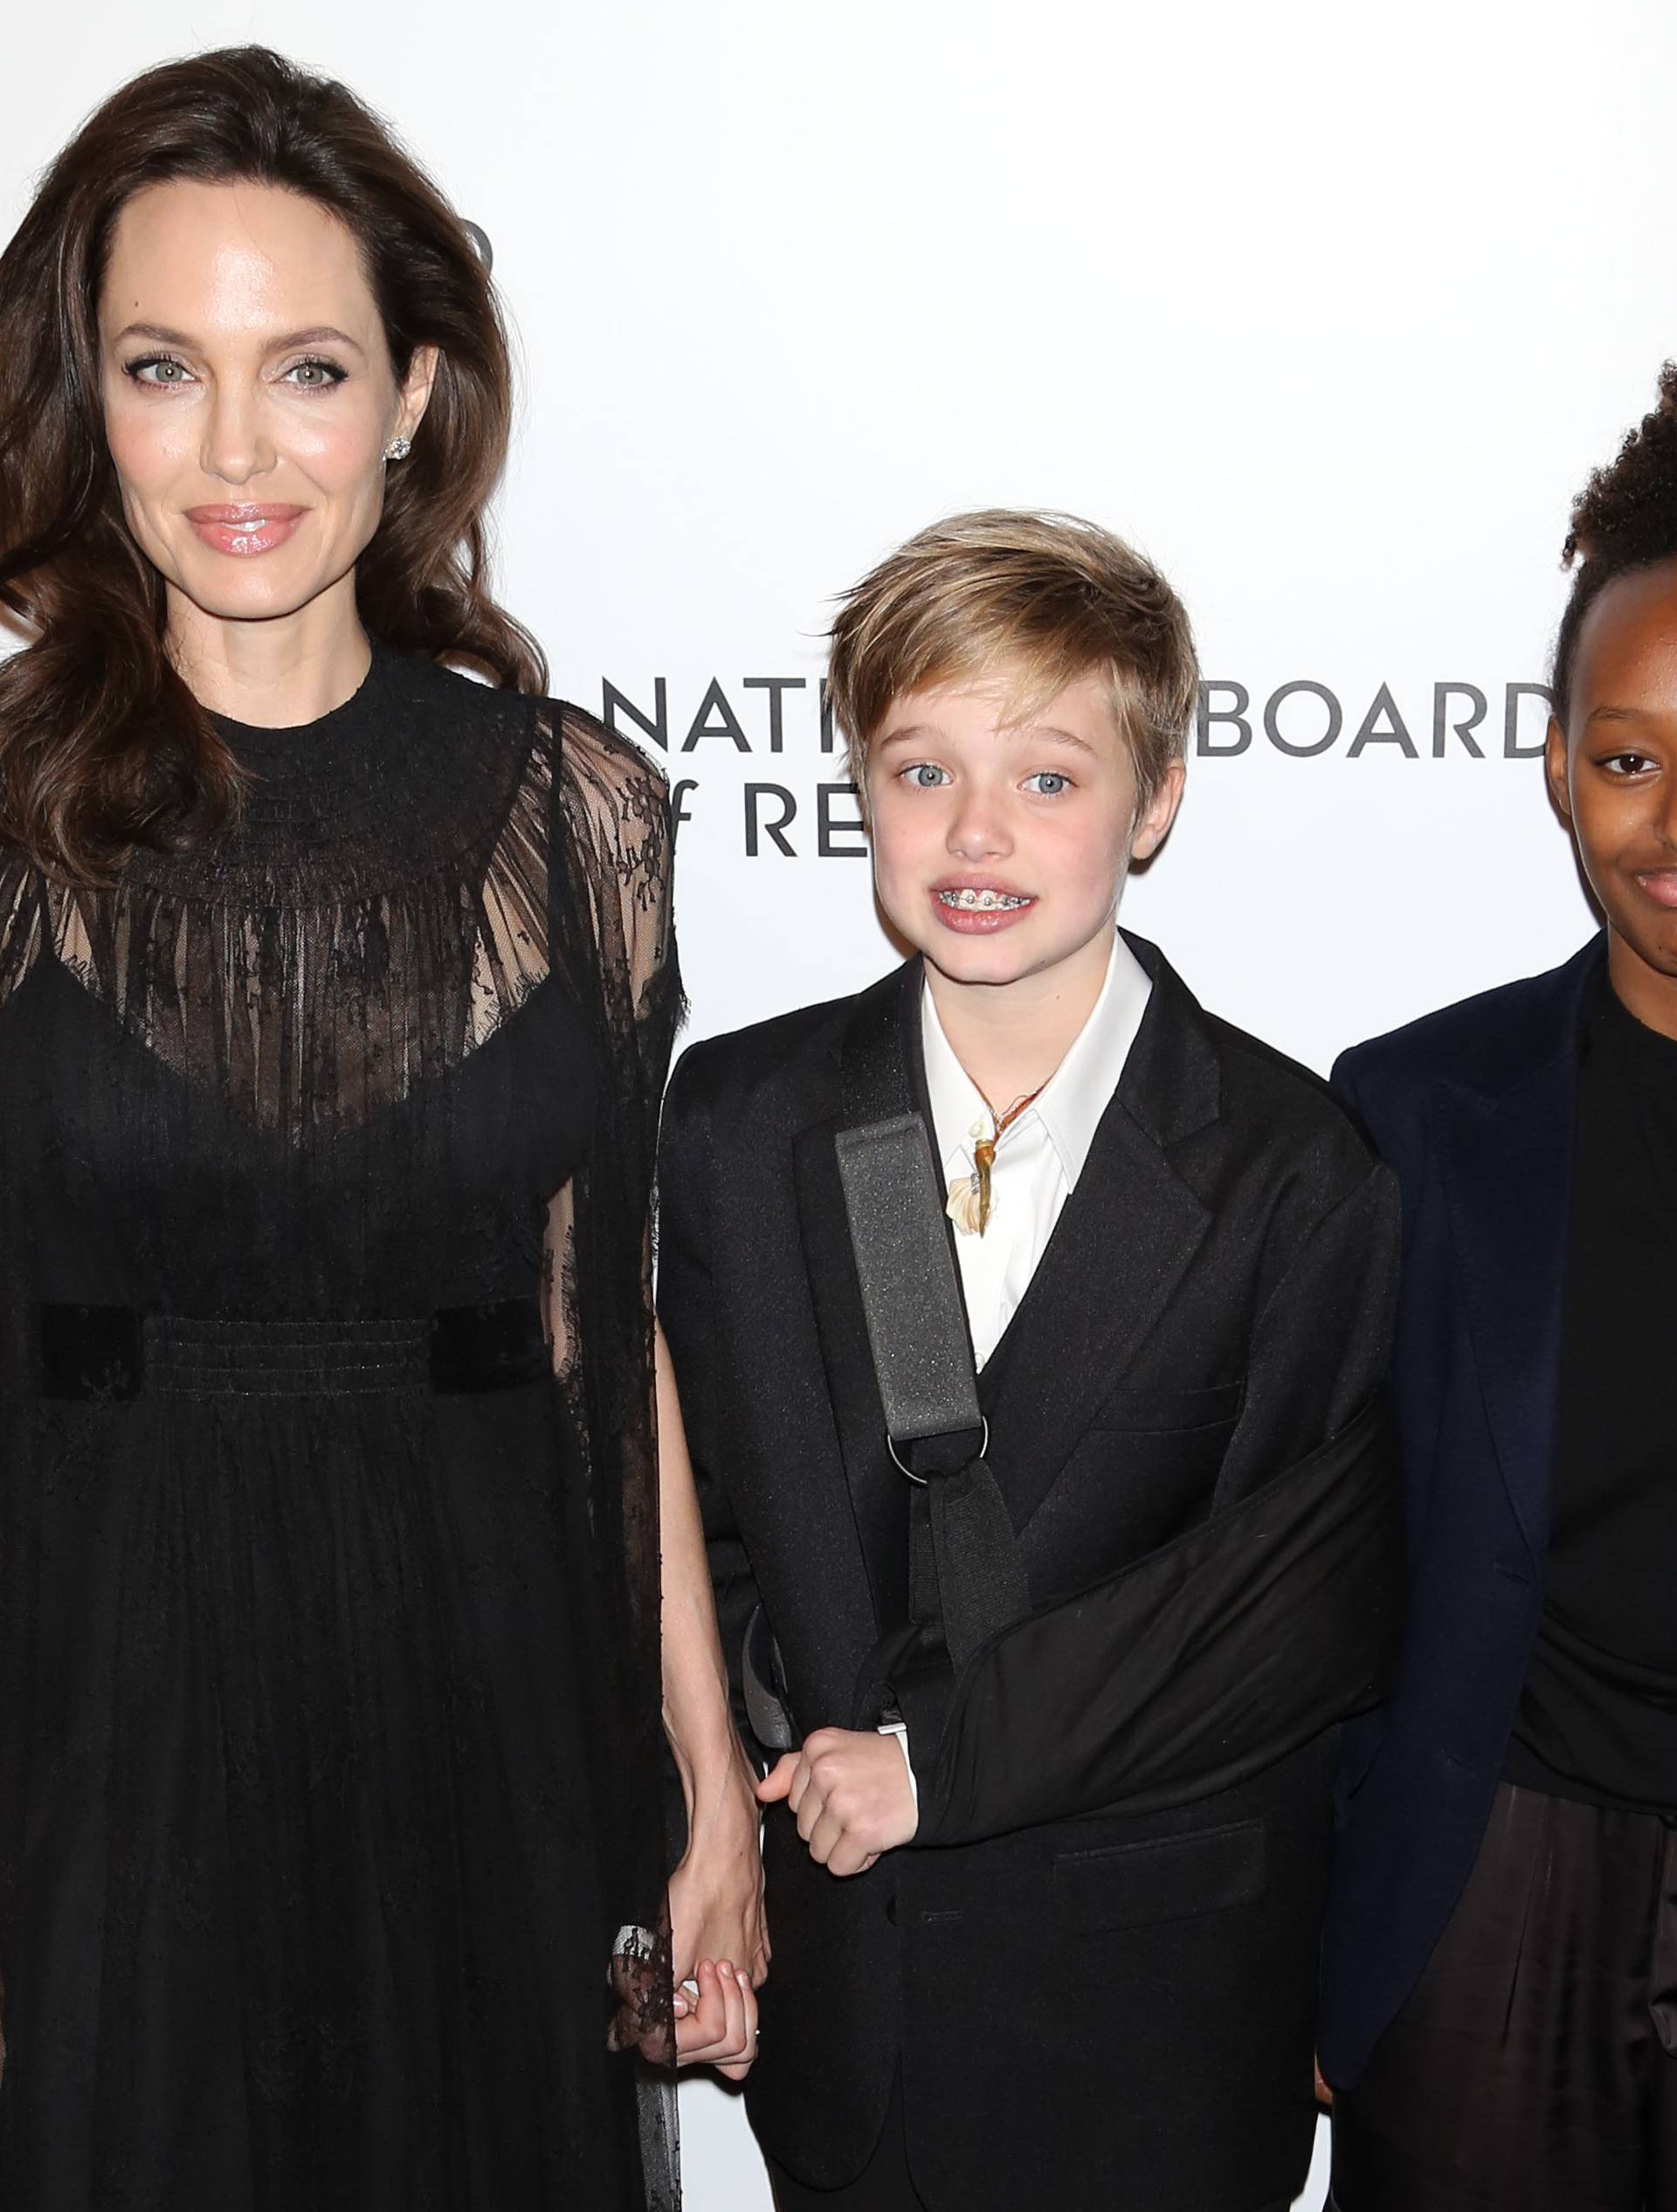 National Board of Review Gala - New York